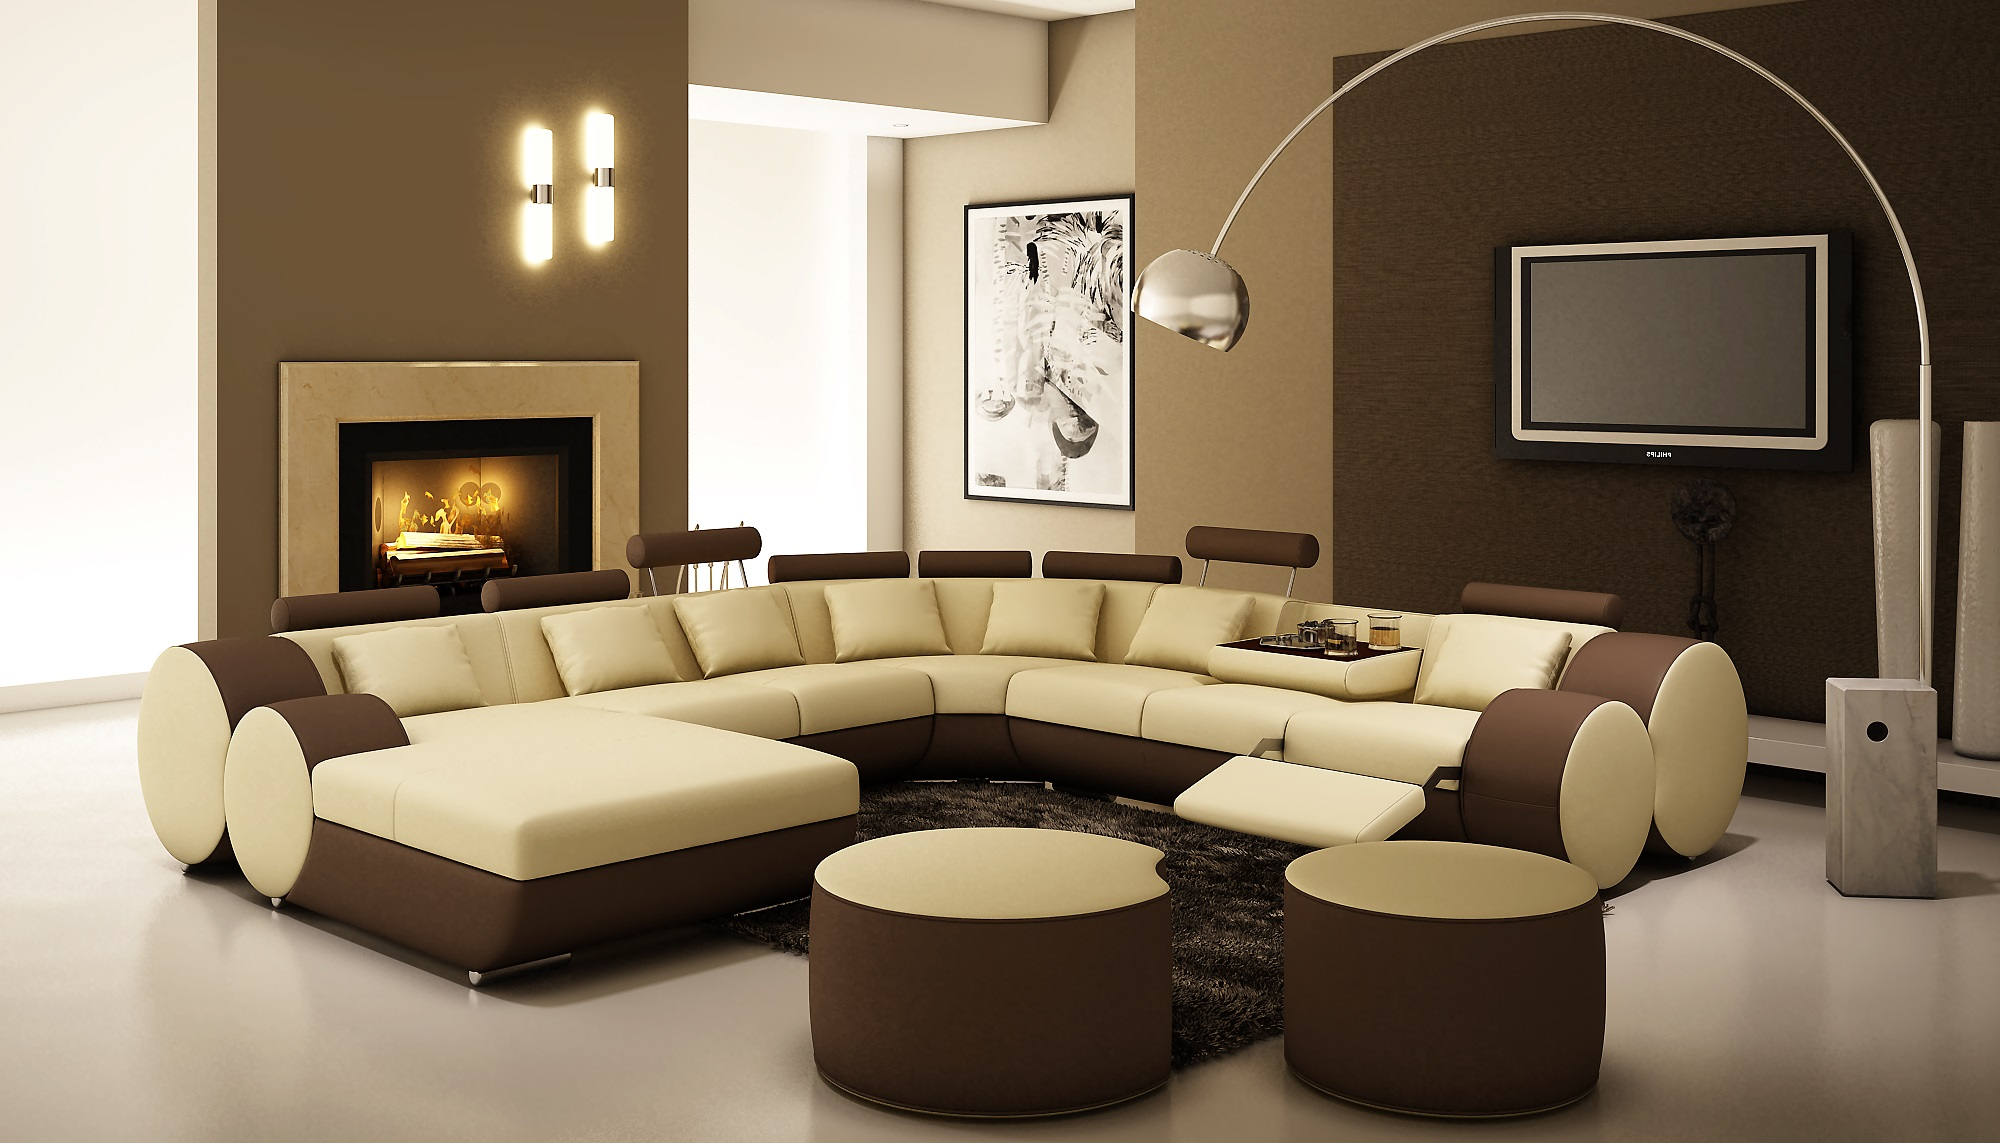 Cream and brown living room designs - Leather Corner Sitting Room The Suitable Home Design